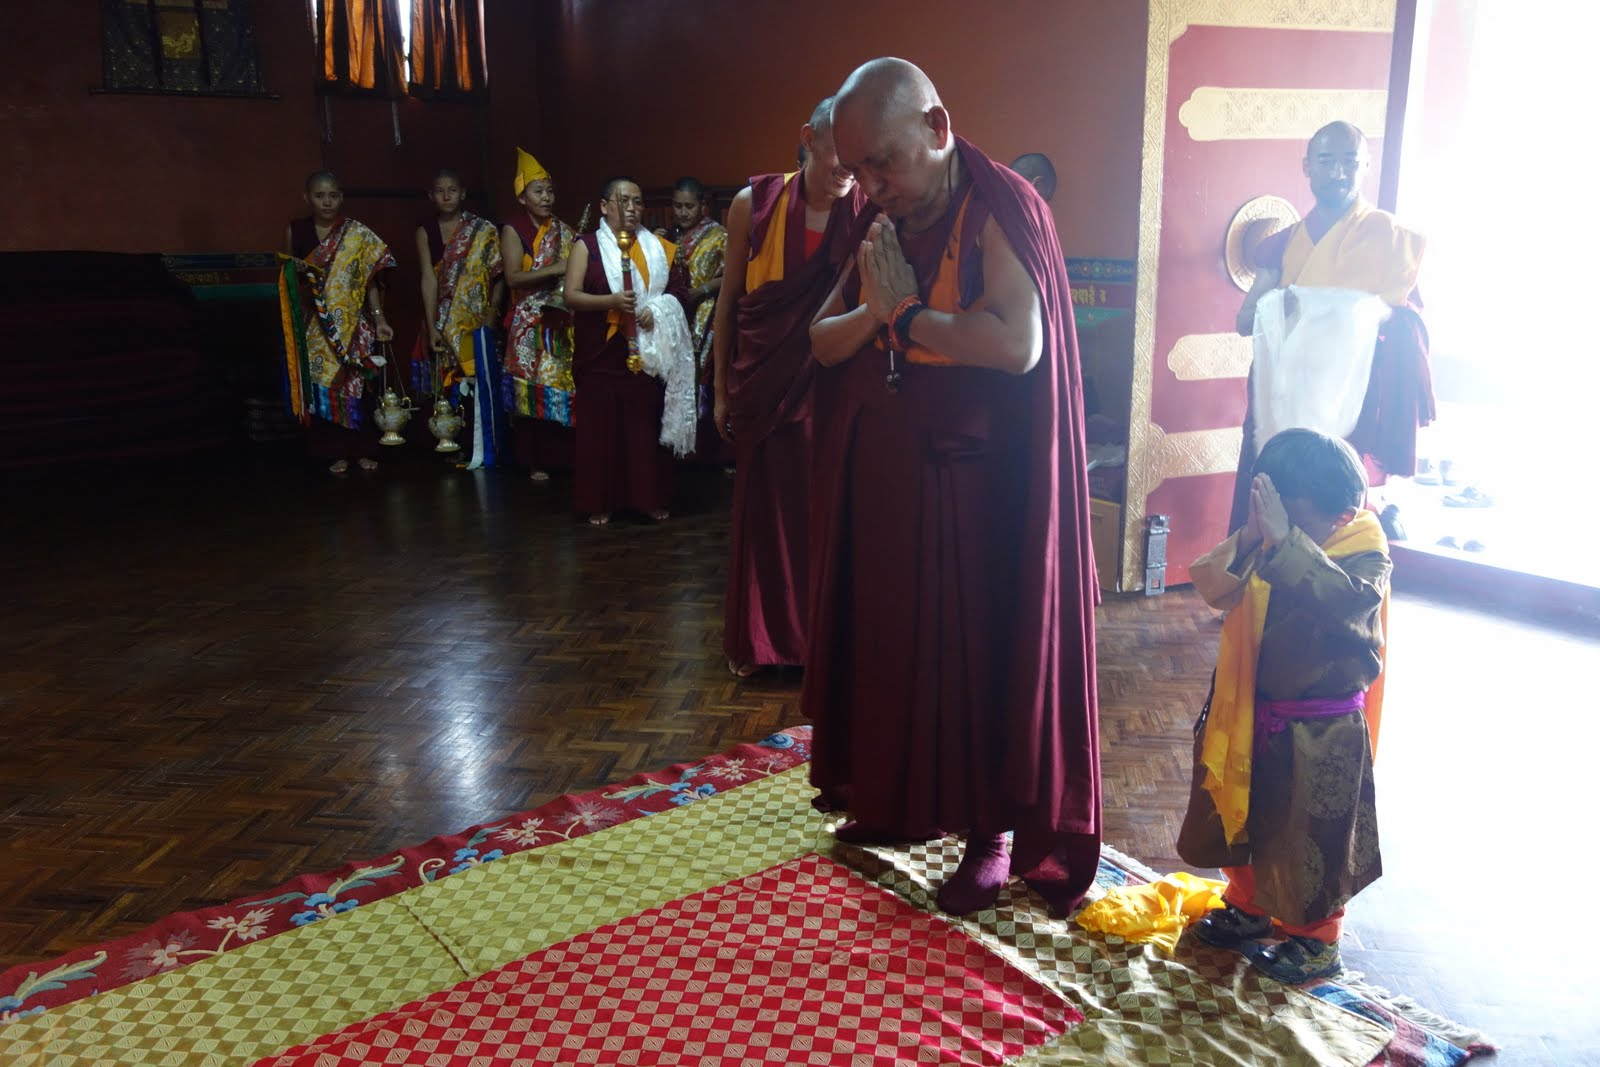 Rinpoche entering the Kopan Nunnery gompa. The very small young lama at his side wanted to copy everything Rinpoche did! August 3, 2013 Photo: Ven. Roger Kunsang